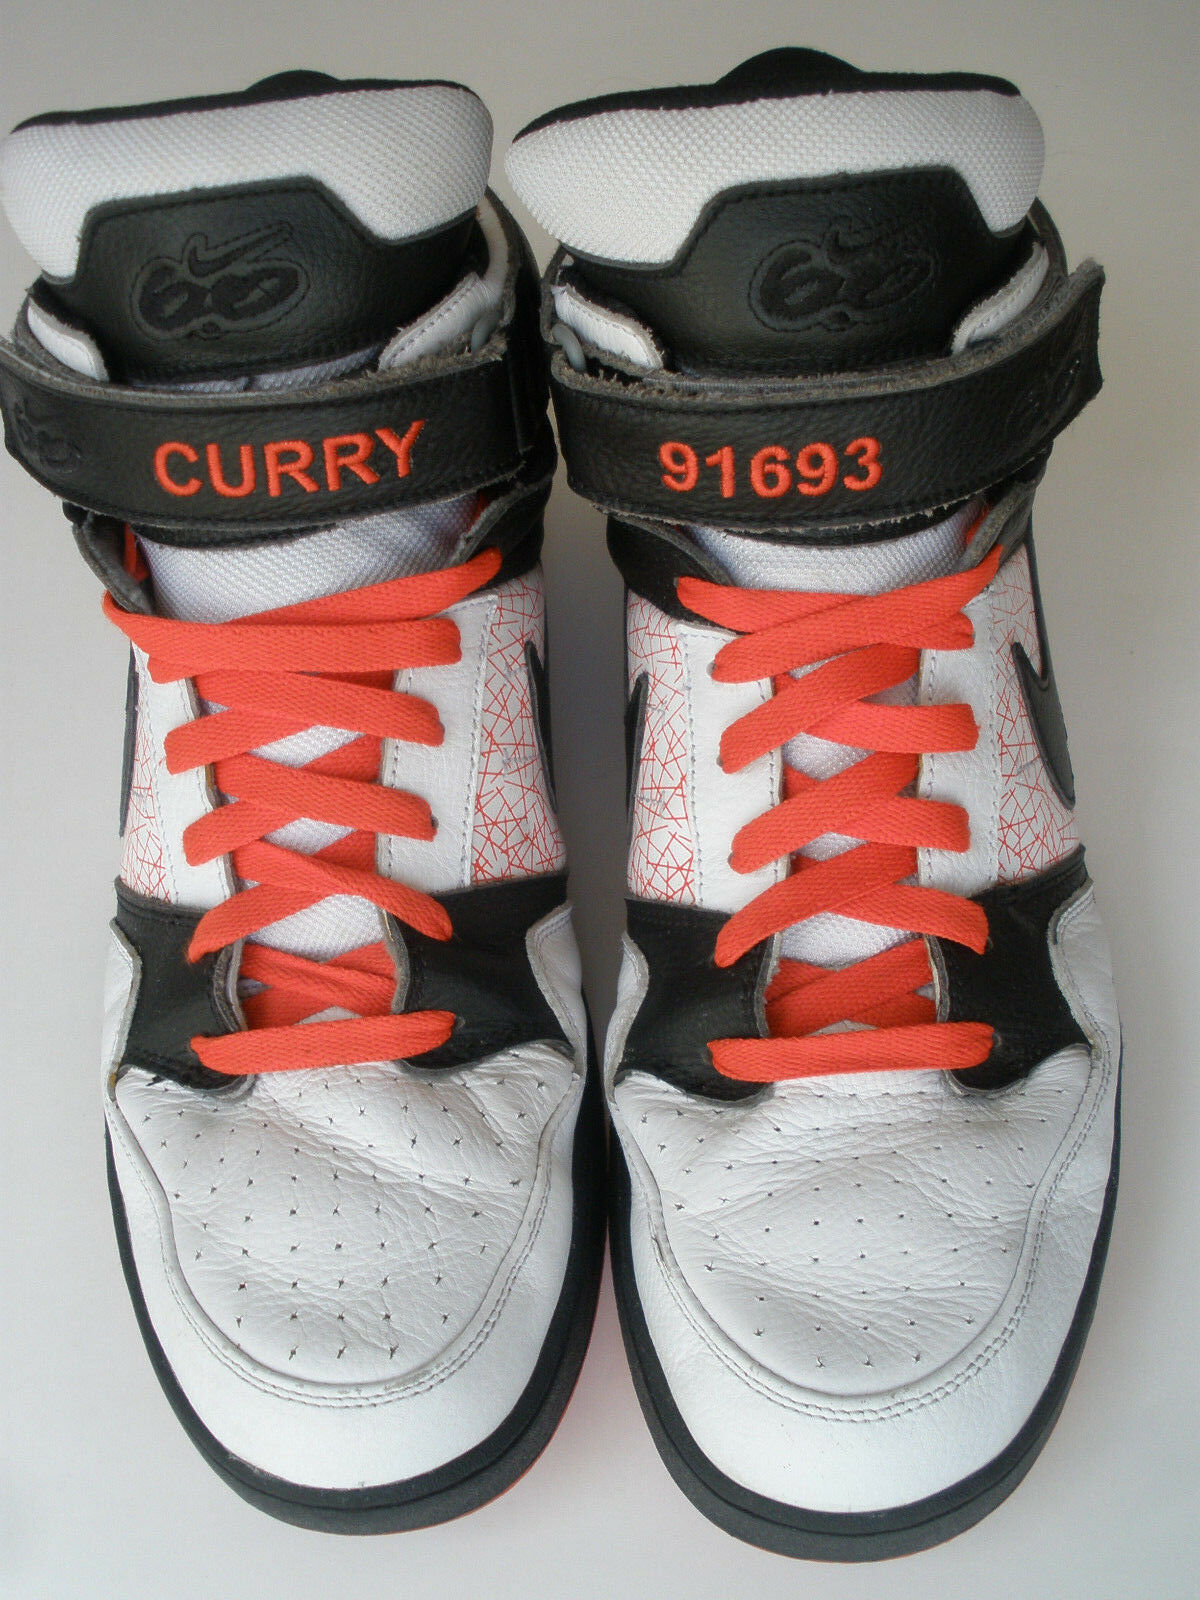 Seasonal price cuts, discount benefits NIKE iD ZOOM AIR 6.0 CURRY LEATHER HI SHOES SIZE US 14